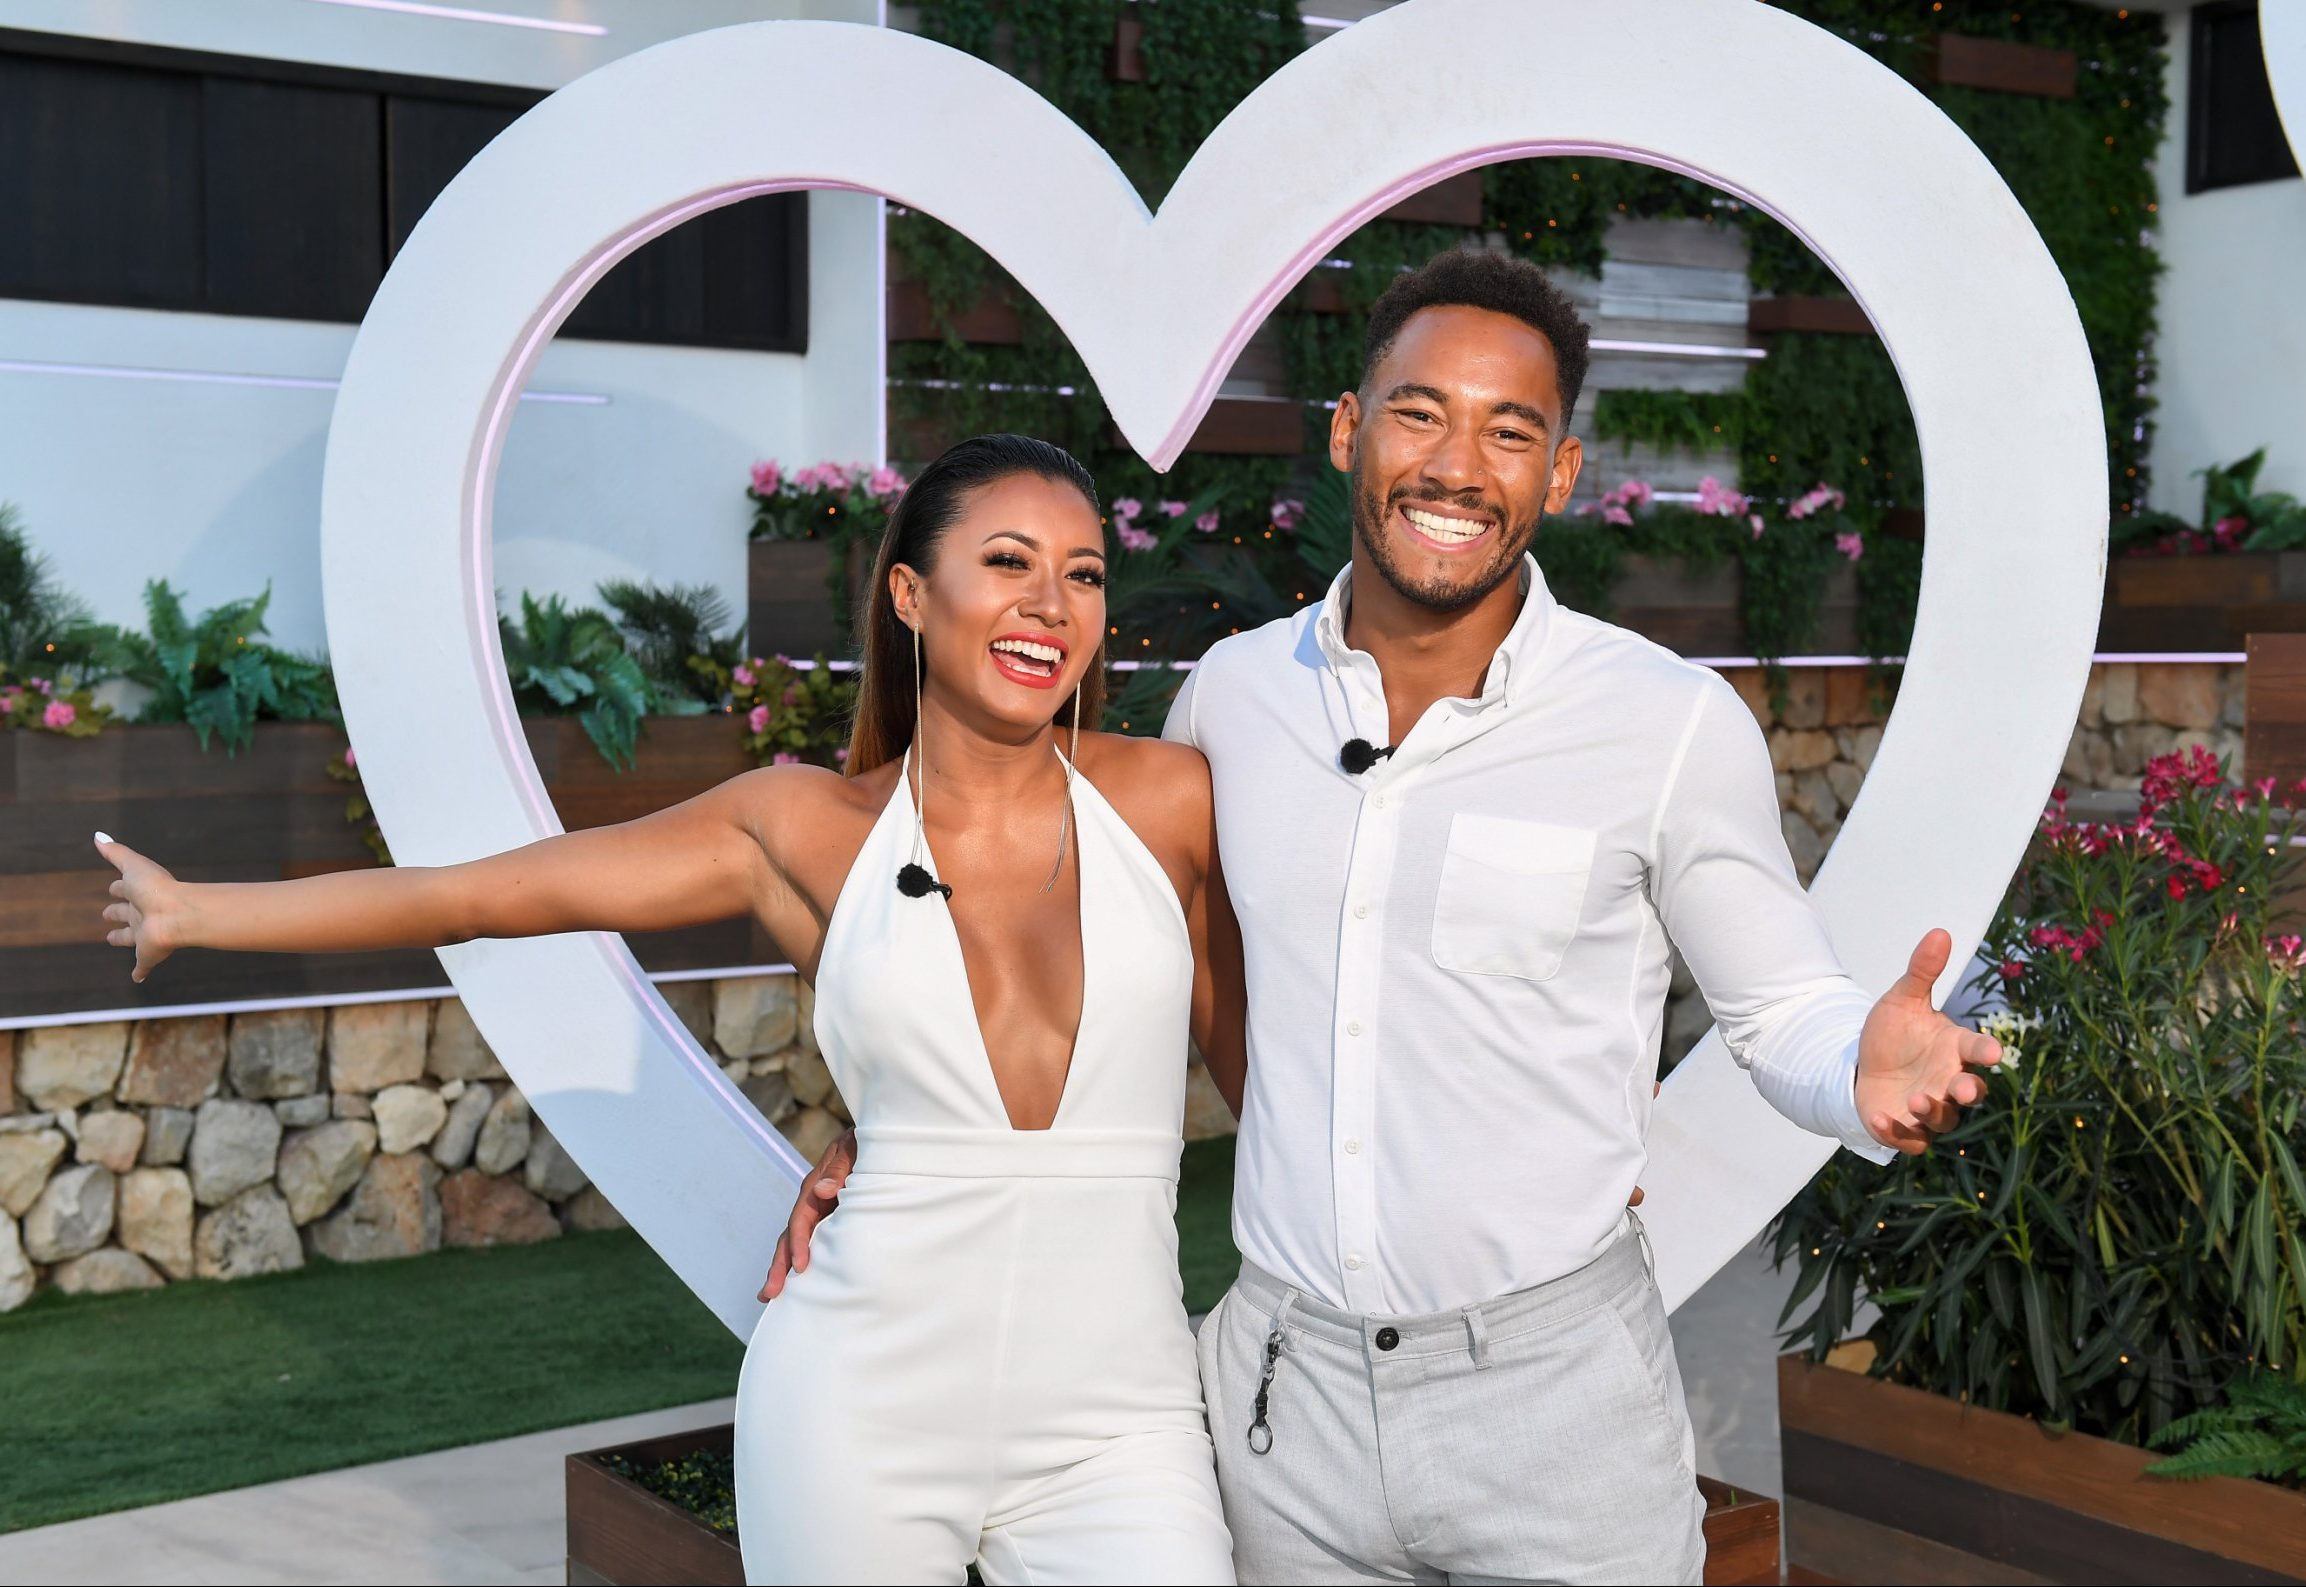 Editorial Use Only. No Merchandising. No Commercial Use Mandatory Credit: Photo by James Gourley/ITV/REX/Shutterstock (9773969ap) Kazimir Crossley and Josh Denzel 'Love Island' TV Show, Series 4, Episode 57, The Final, Majorca, Spain - 30 Jul 2018